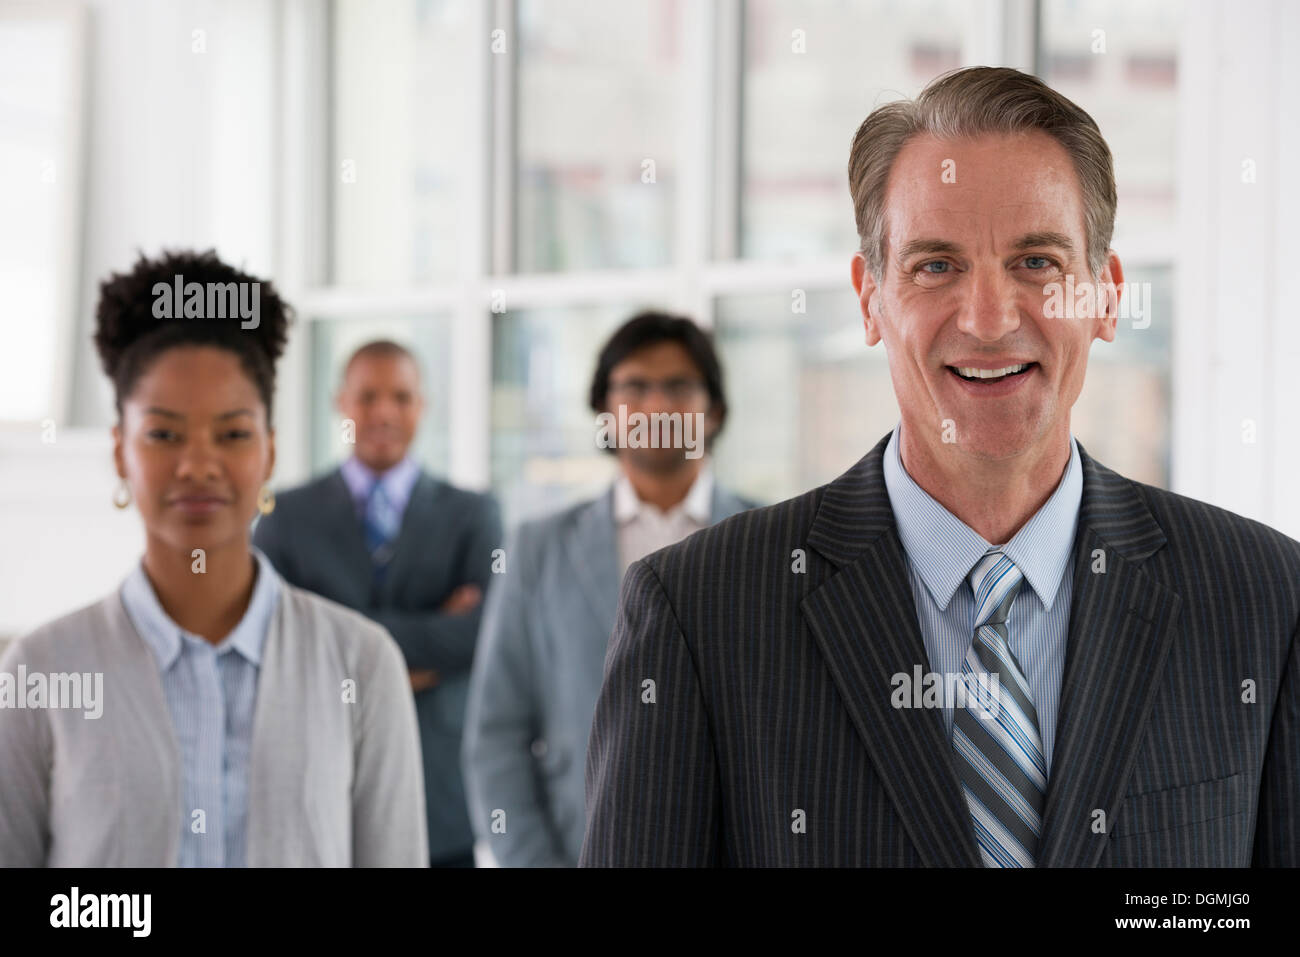 Business people. Four people, three men and a woman. Stock Photo